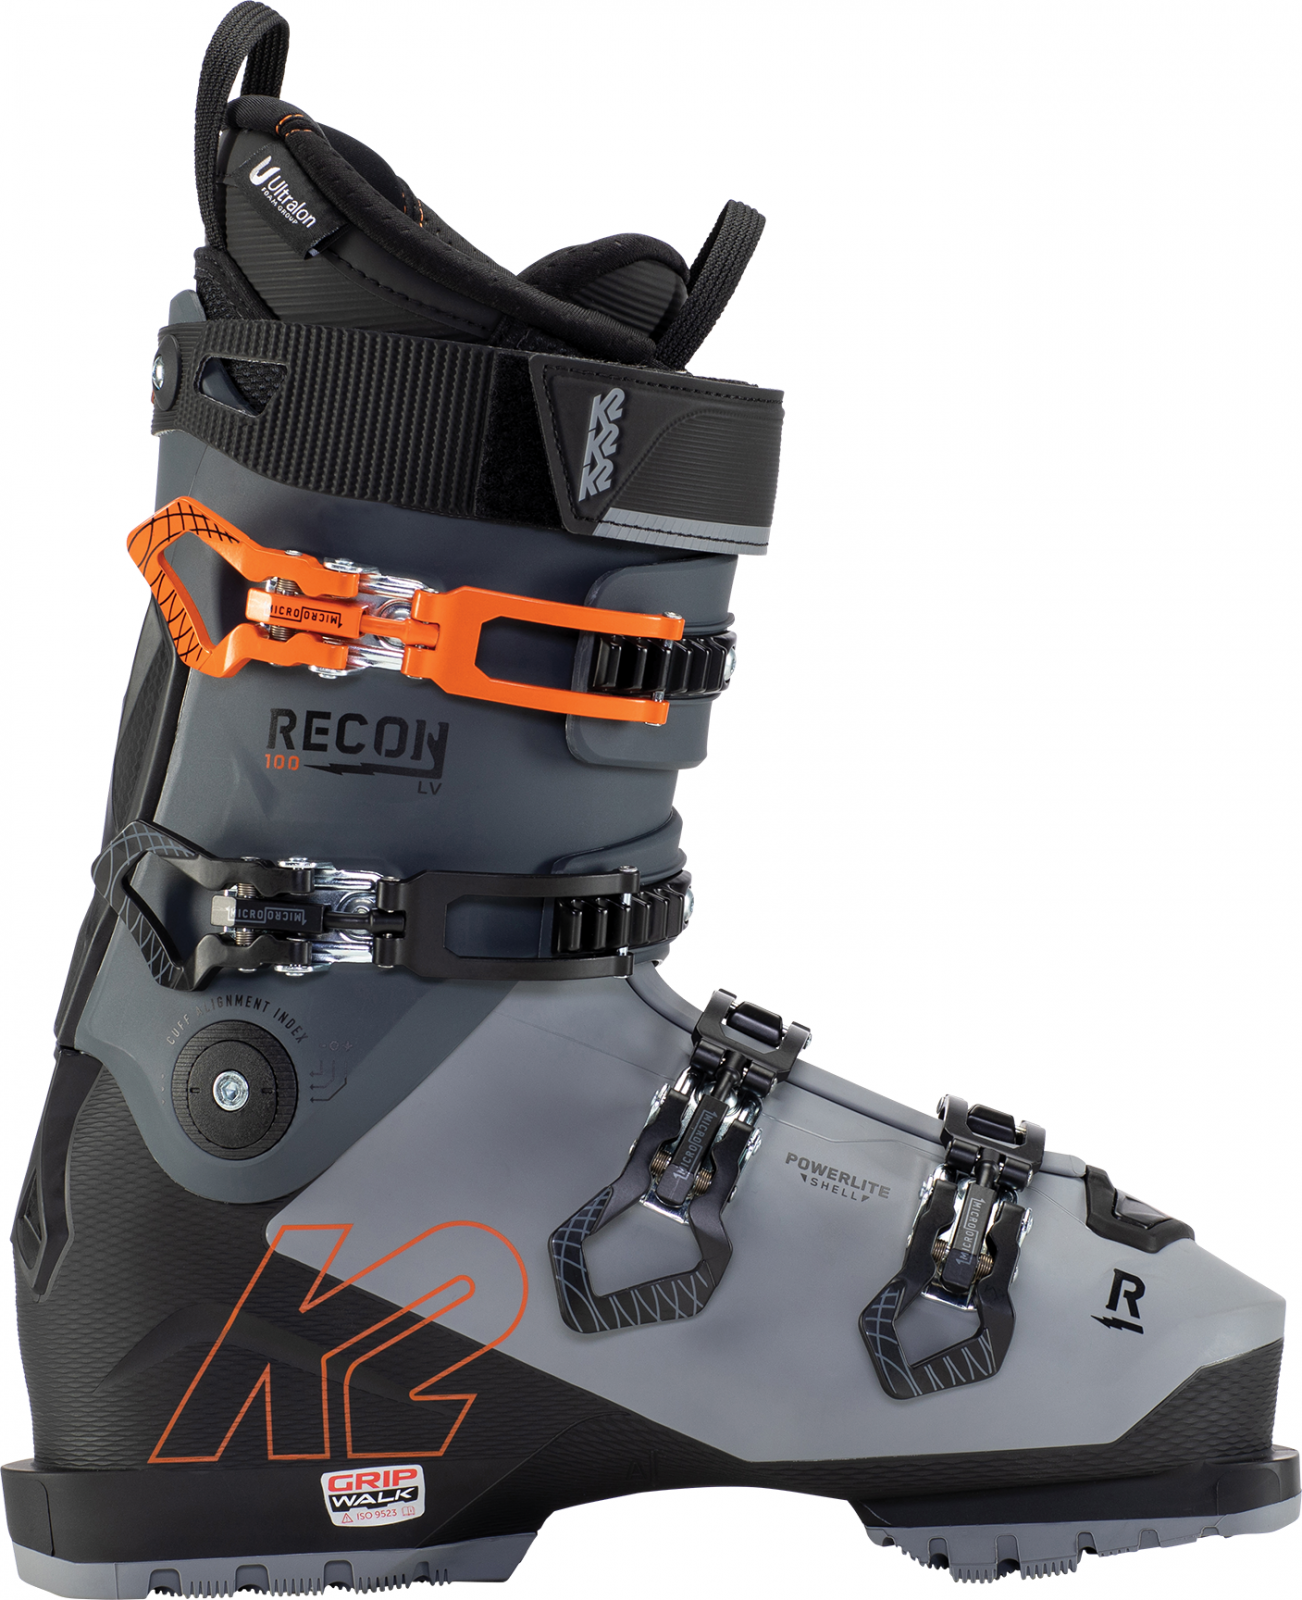 2021 K2 Recon 100 MV Gripwalk Men's Ski Boots